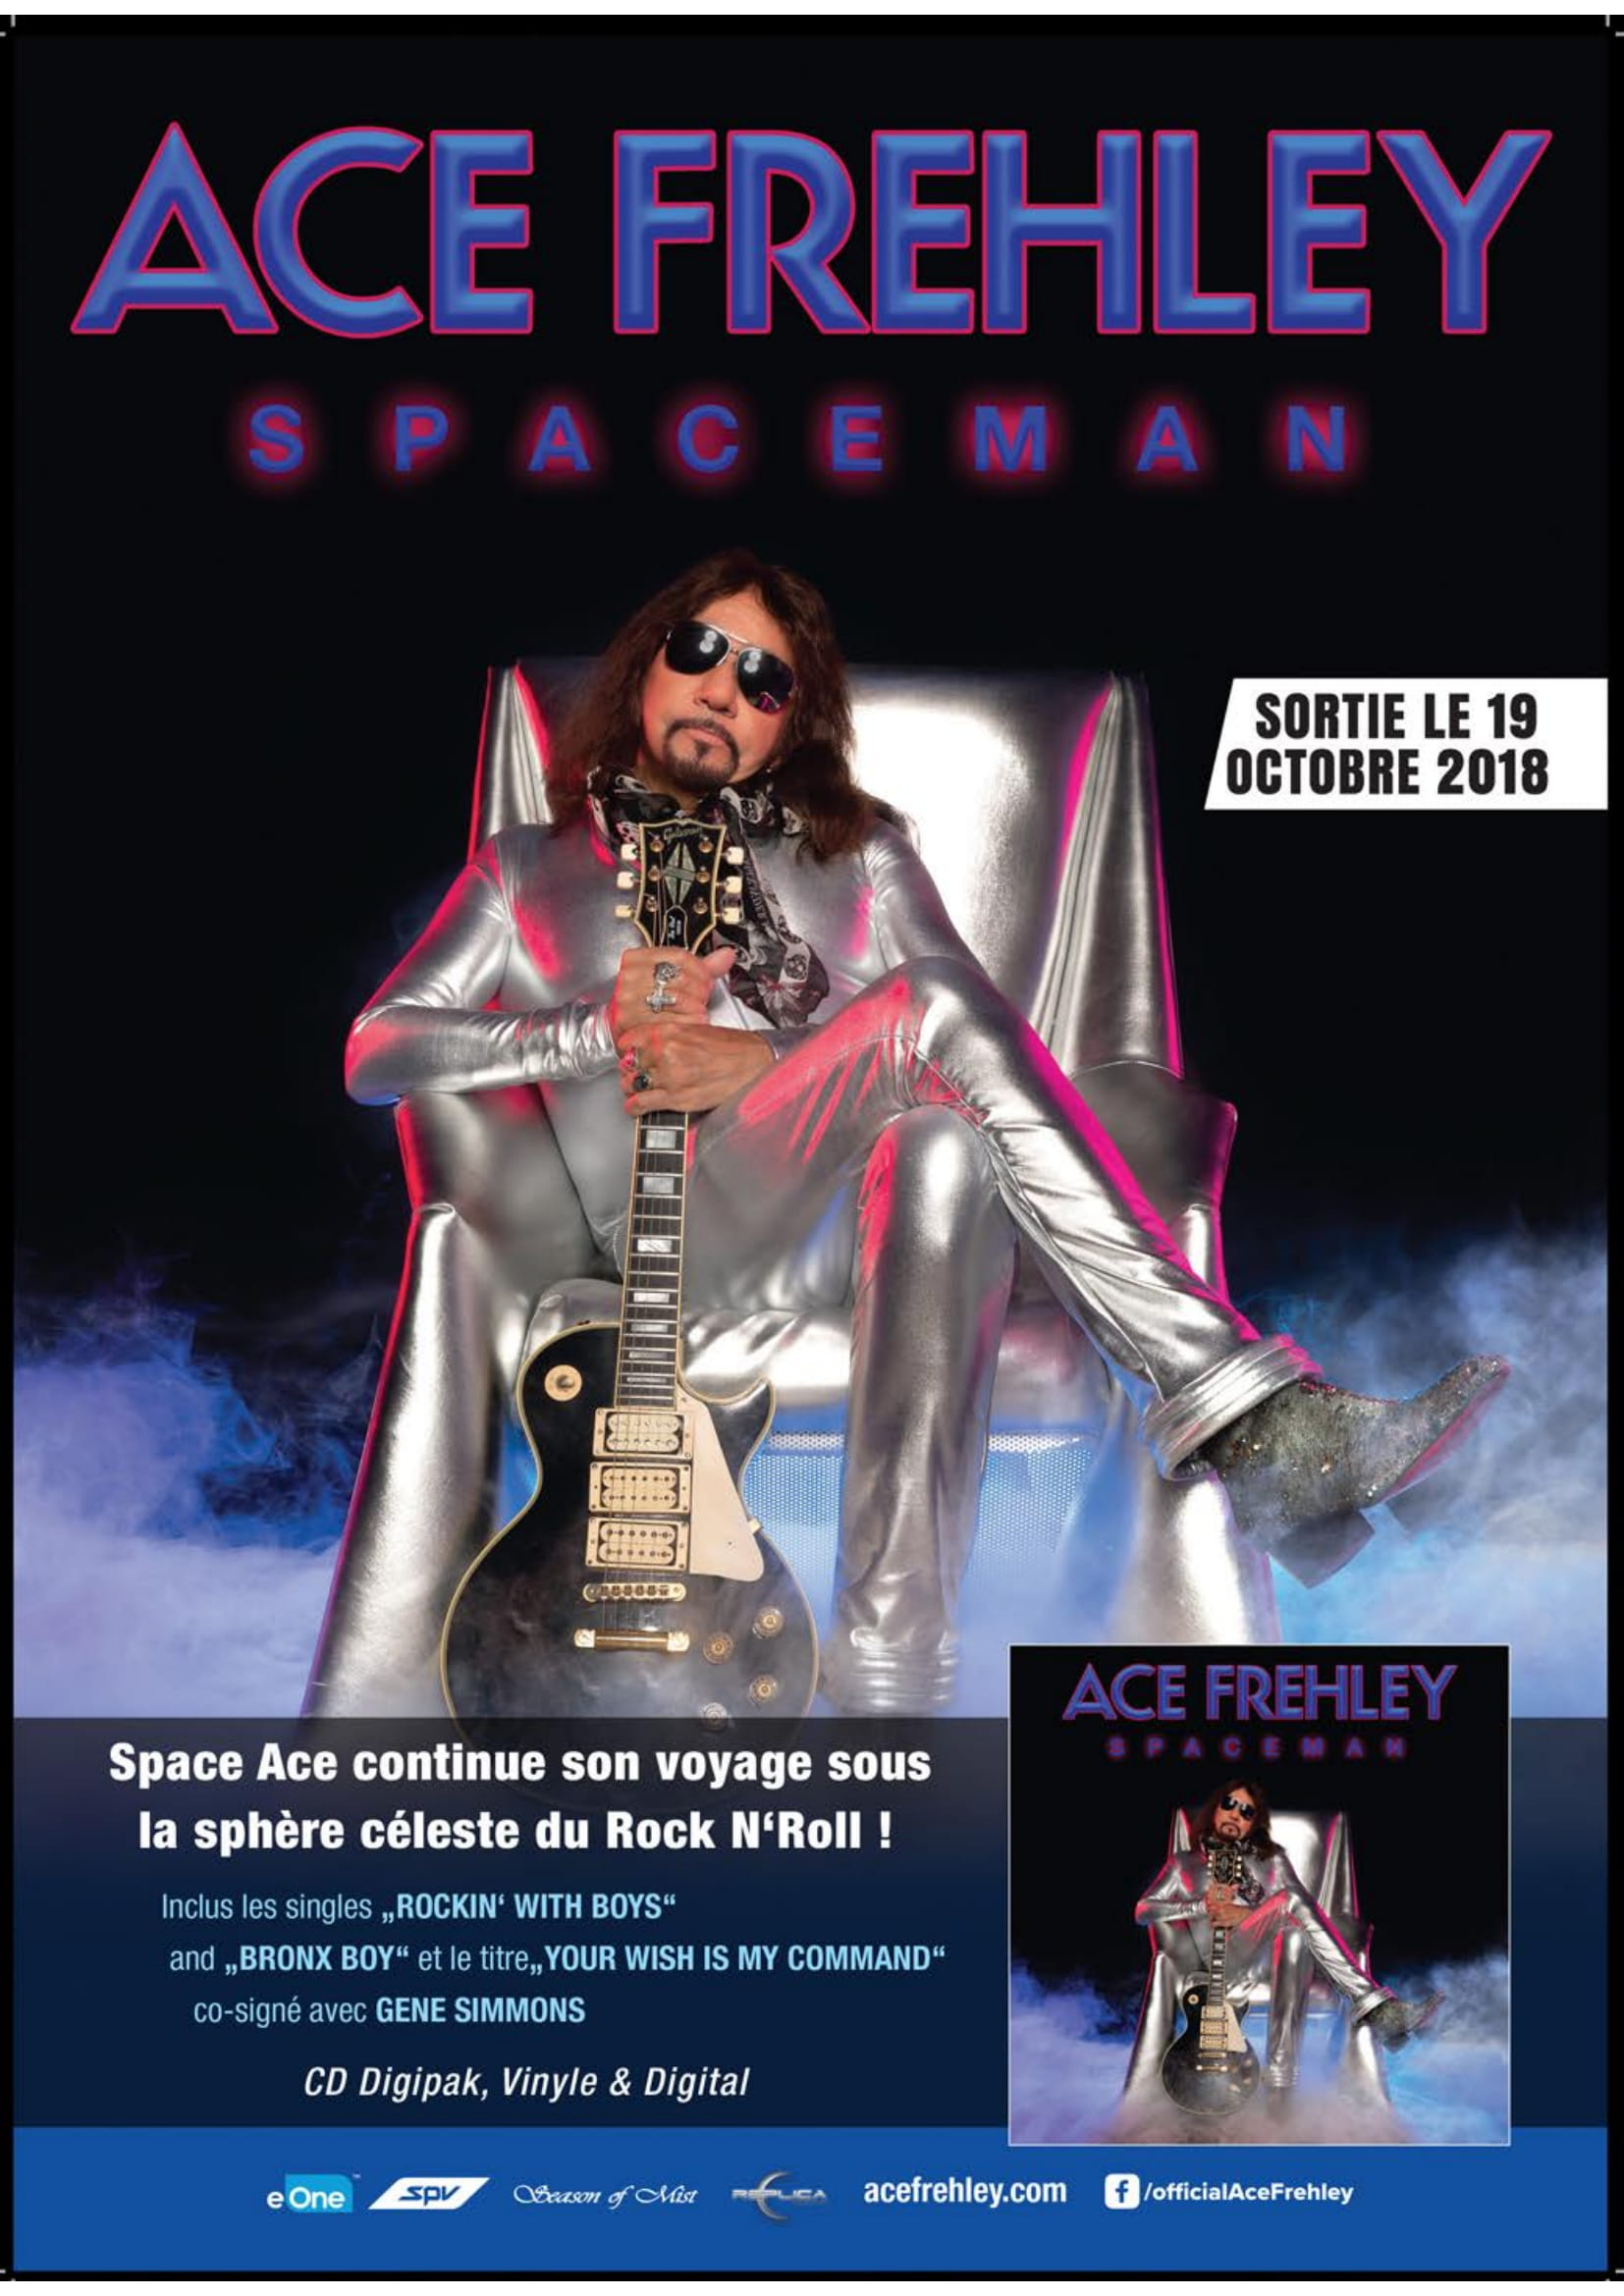 ACE FREHLEY Spaceman (2018) Hard-Rock  Metalo14